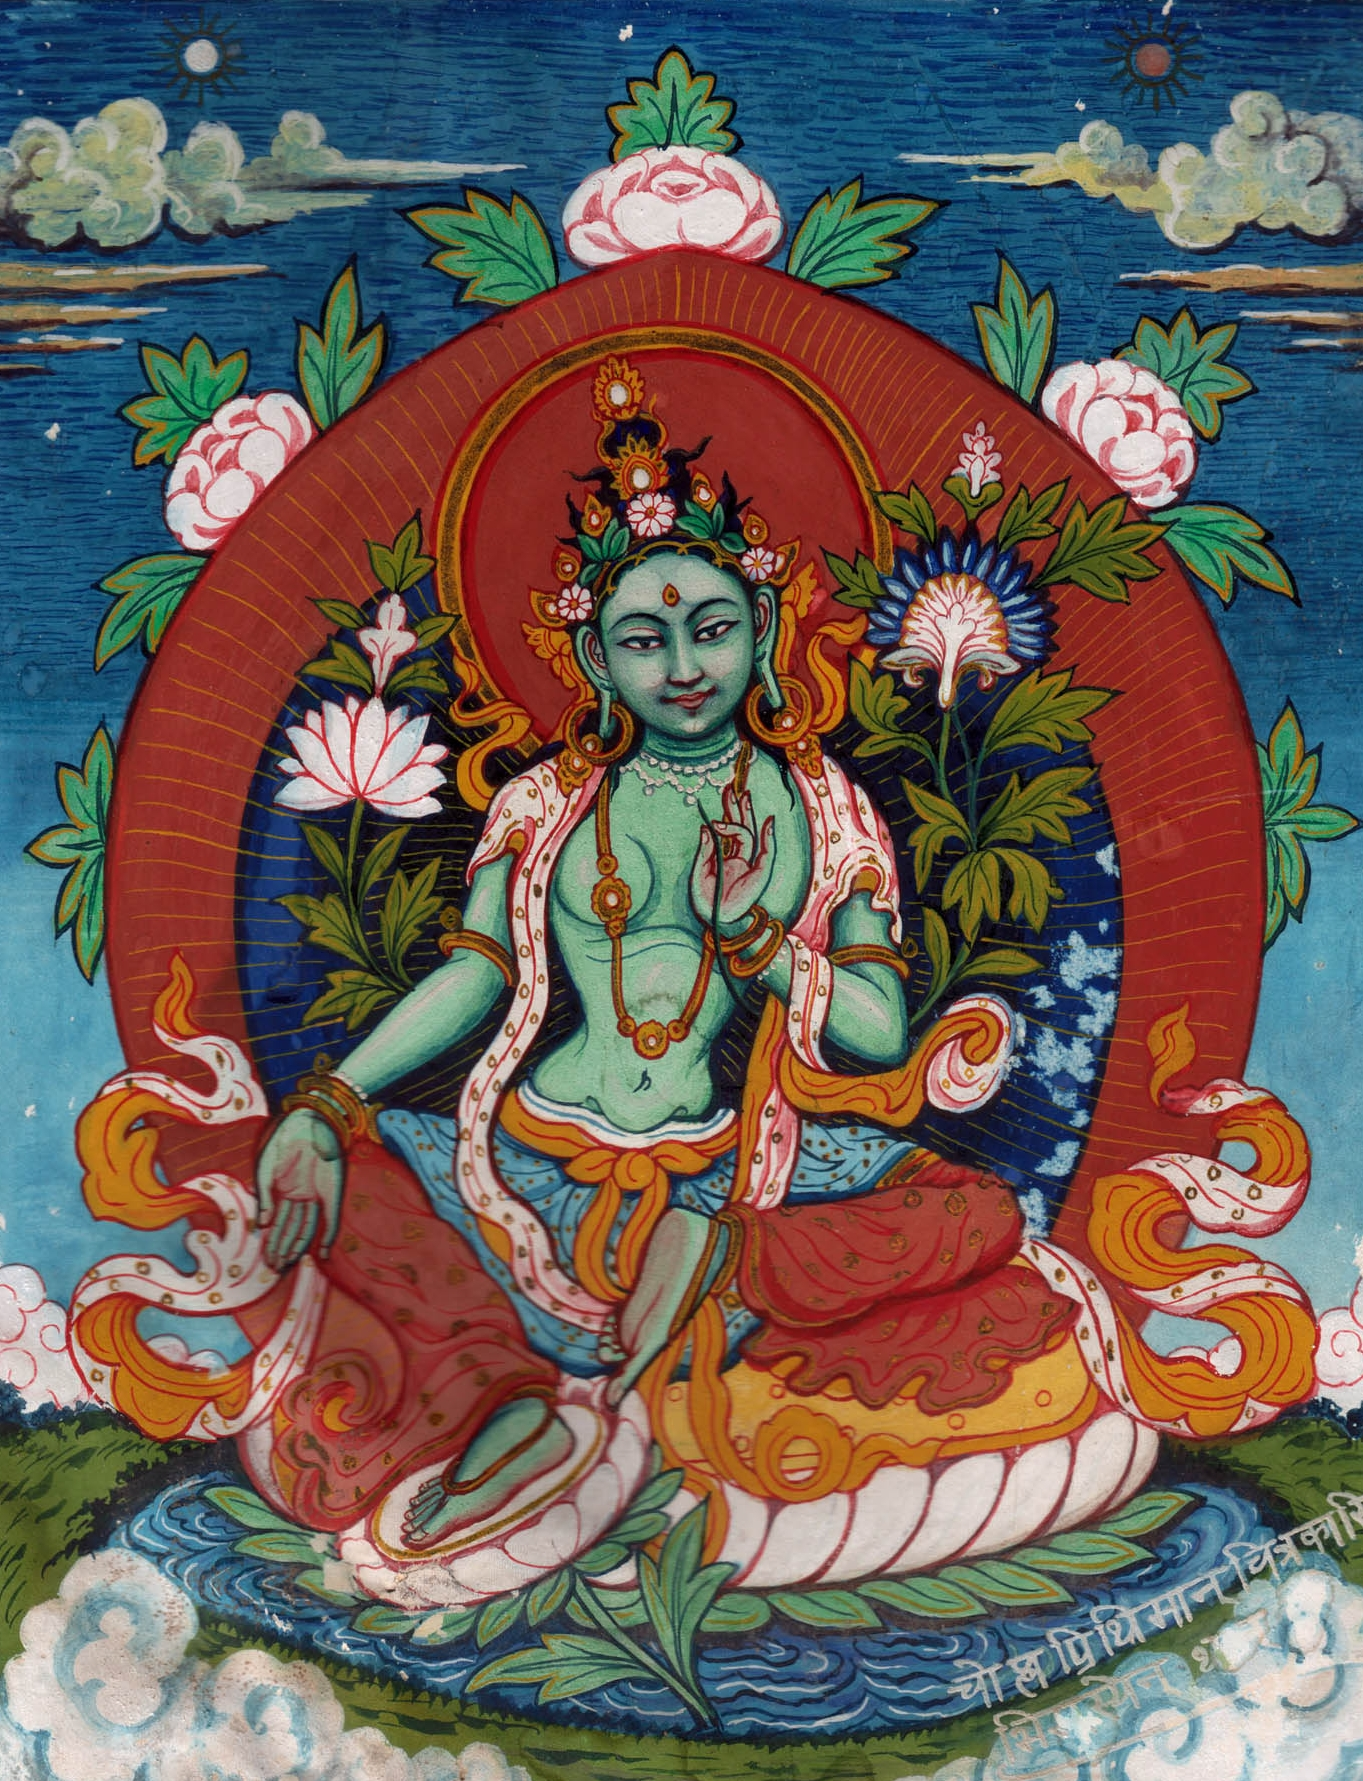 Green Tara from the Tibetans